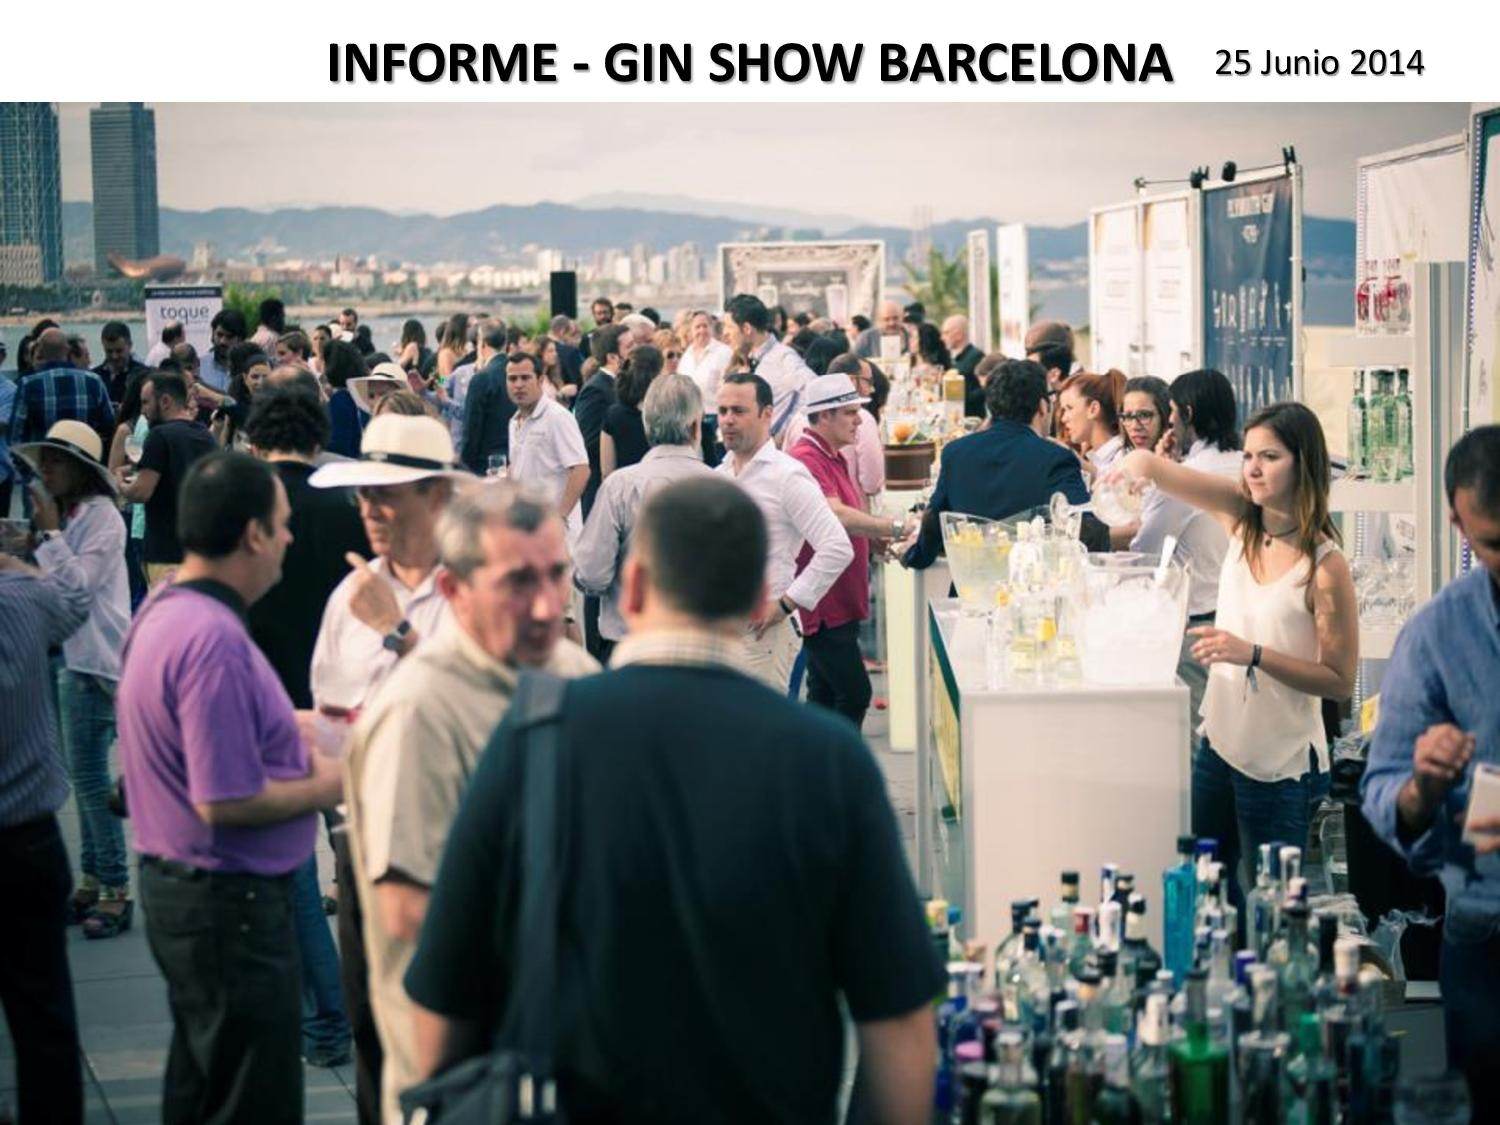 2014/06 Informe Gin Show 2014 Barcelona (Drinks Marketing Group)